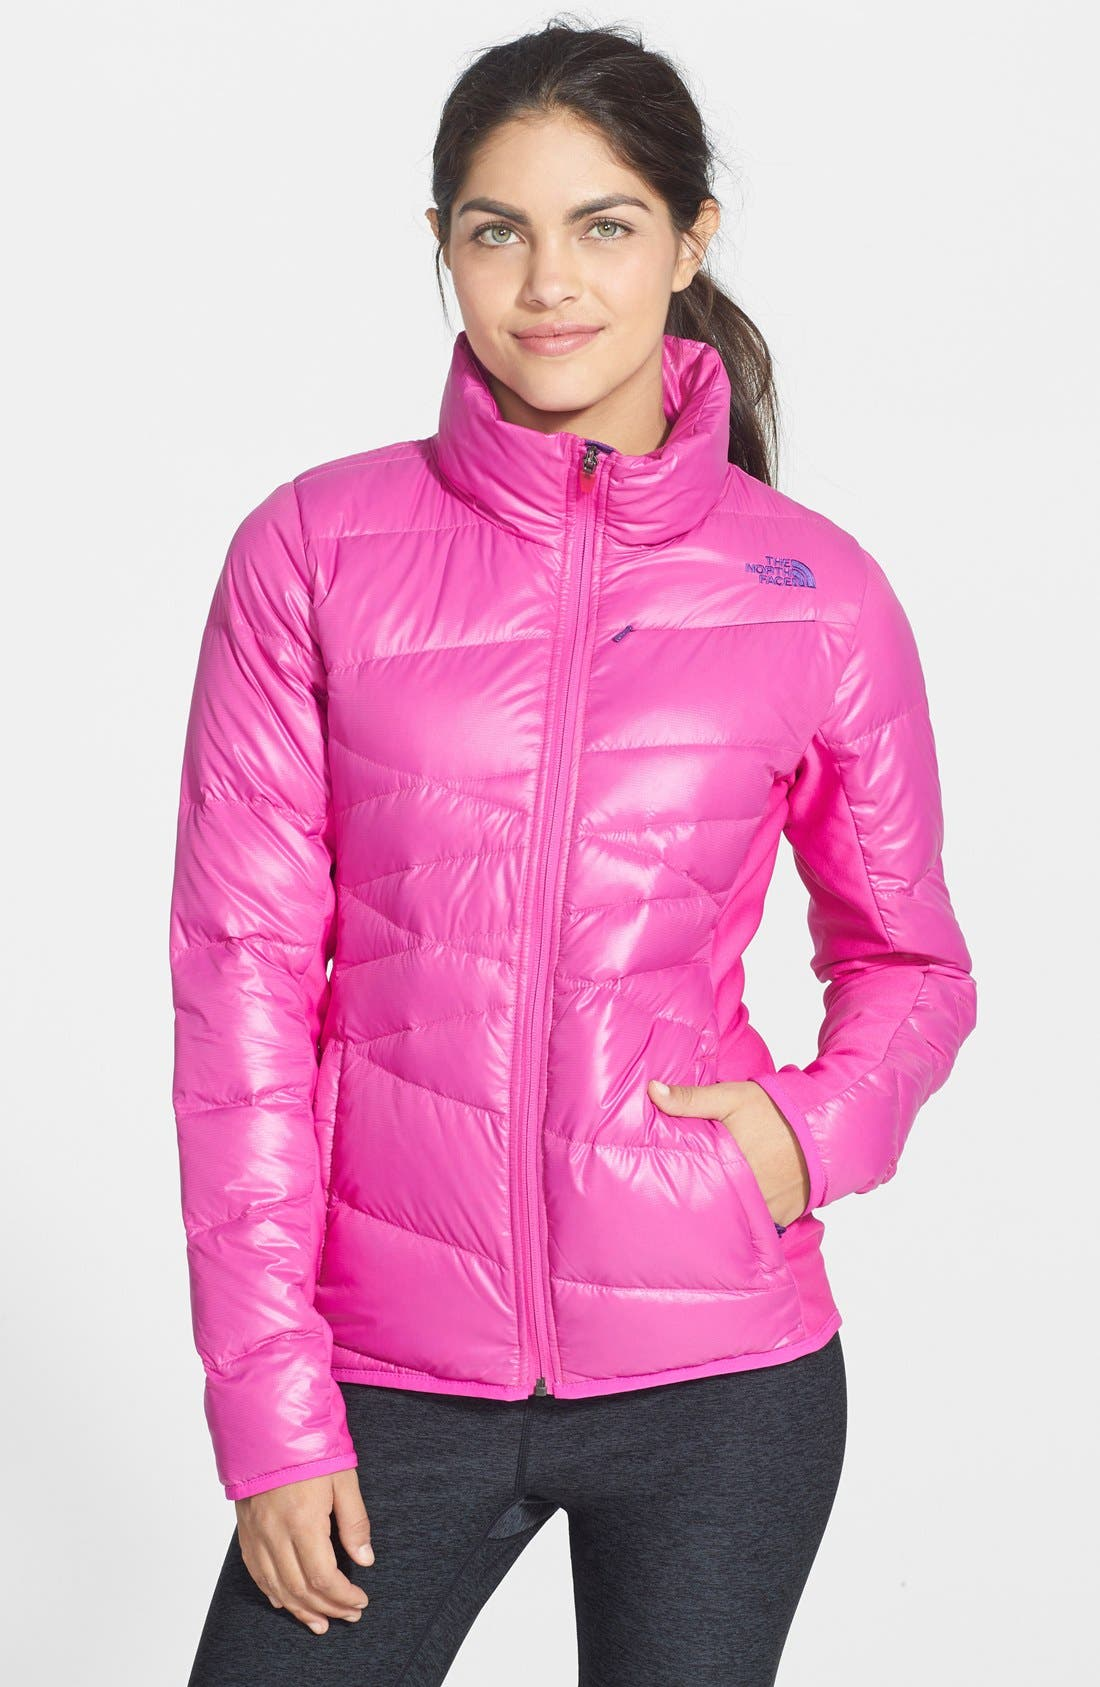 Alternate Image 1 Selected - The North Face 'Hyline' Hybrid Down Jacket